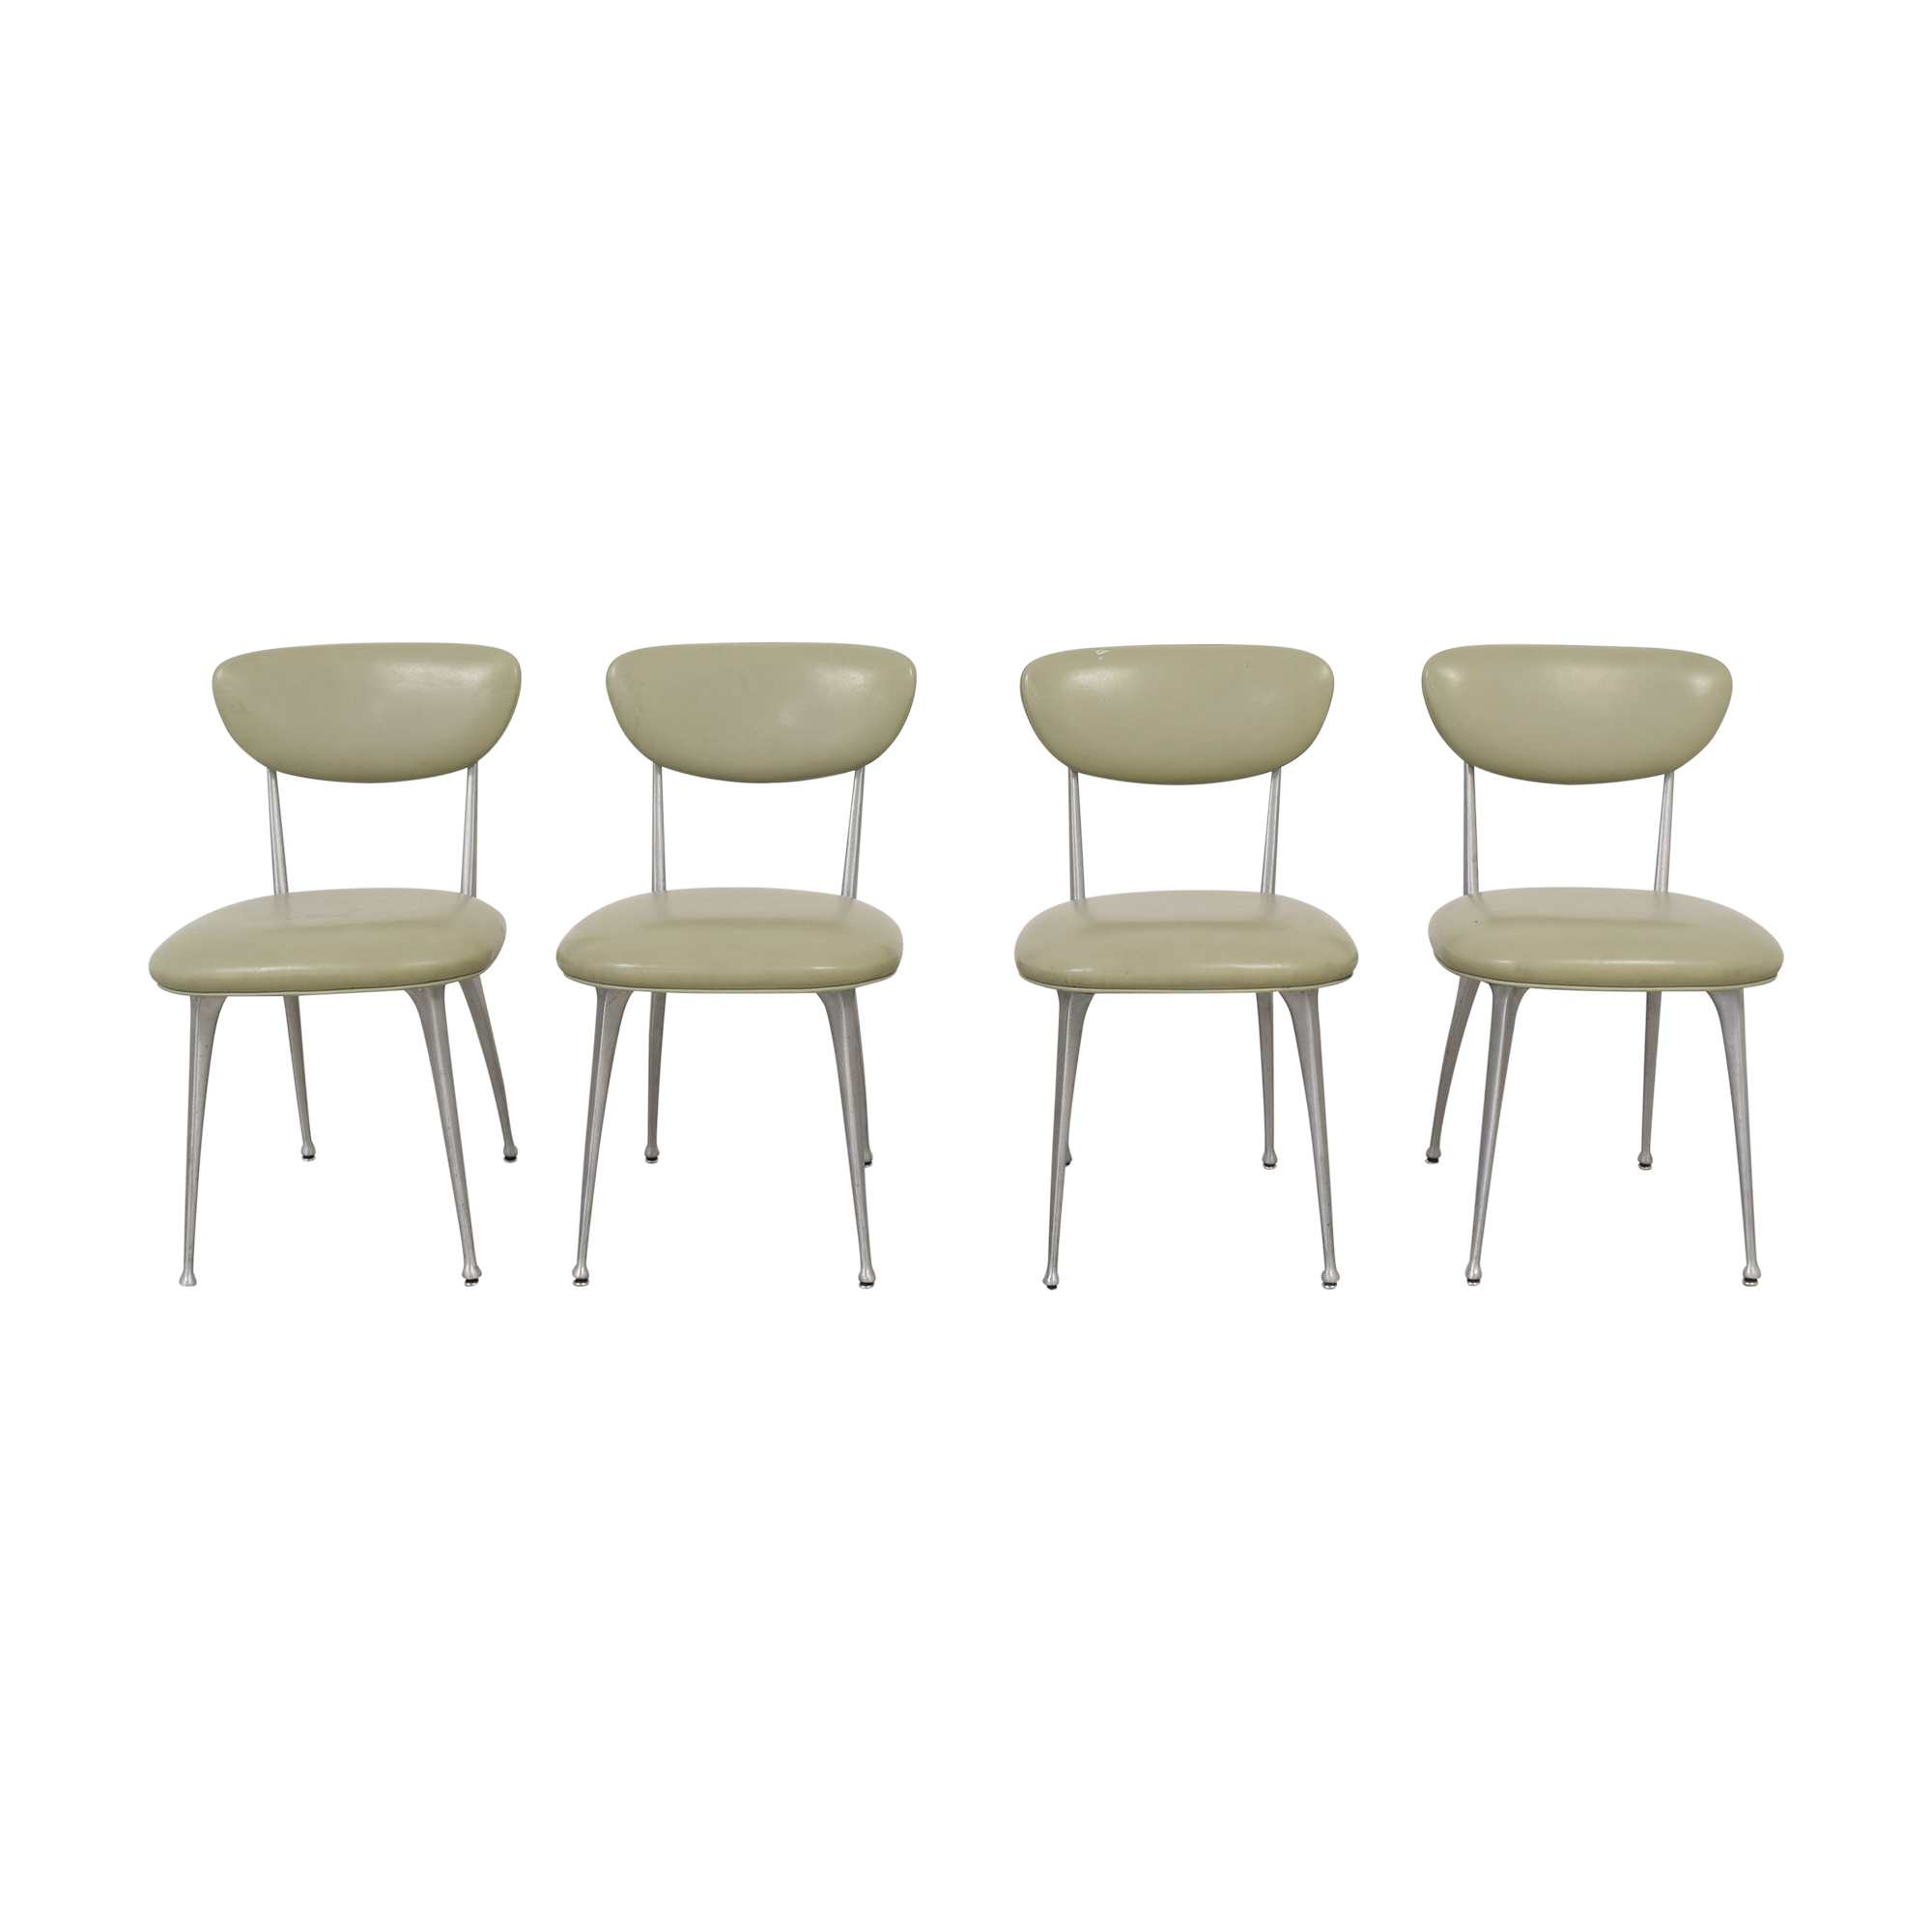 Modernica Modernica Vintage Dining Chairs on sale